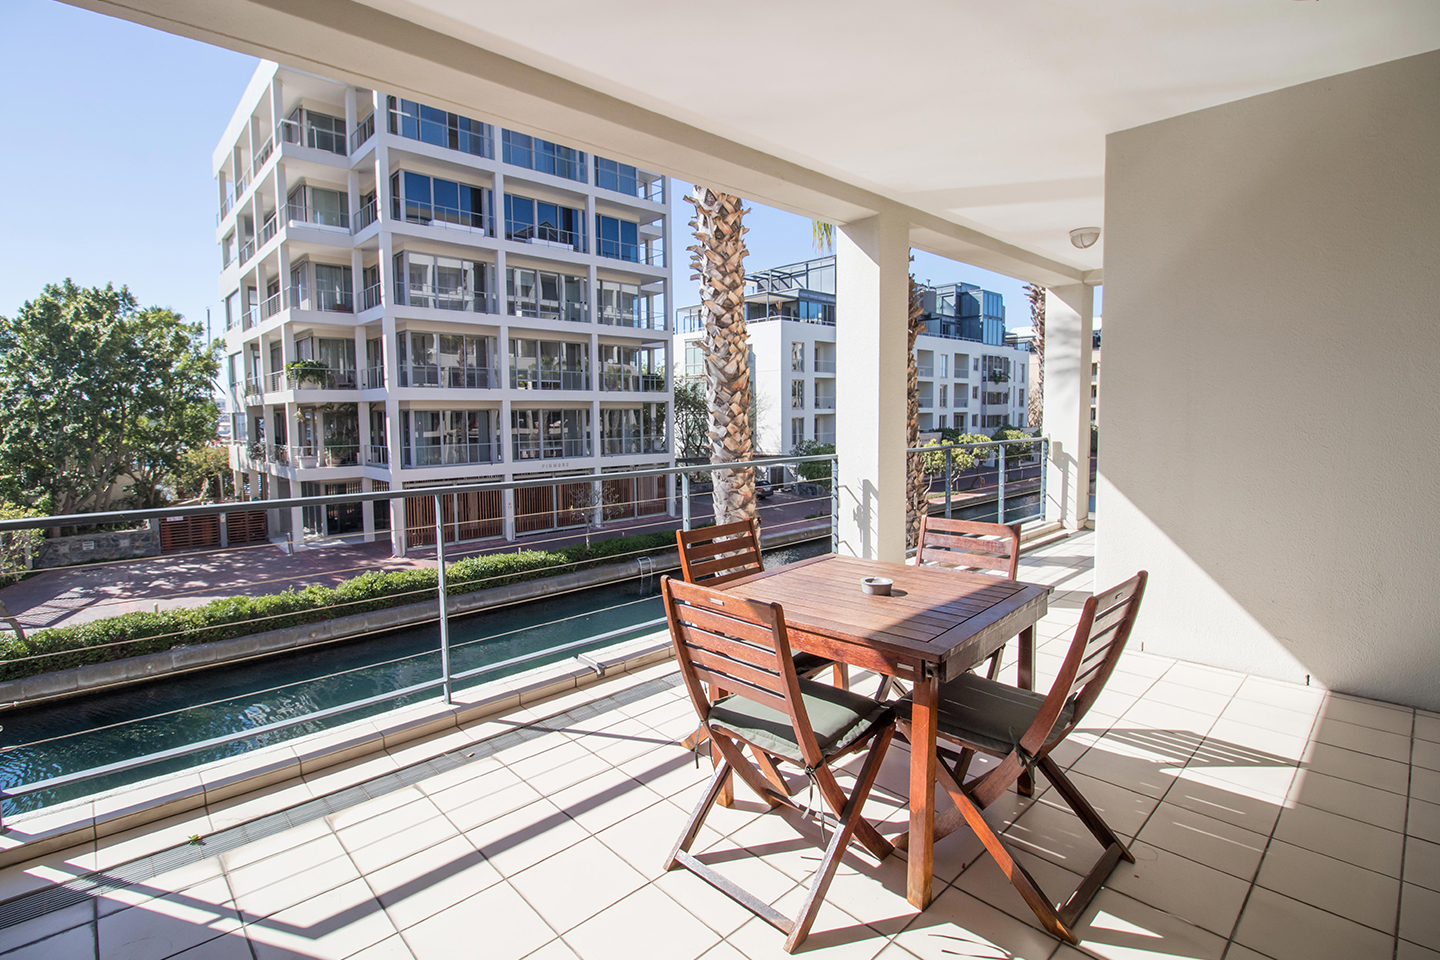 Balcony at Waterfront Village - Citybase Apartments